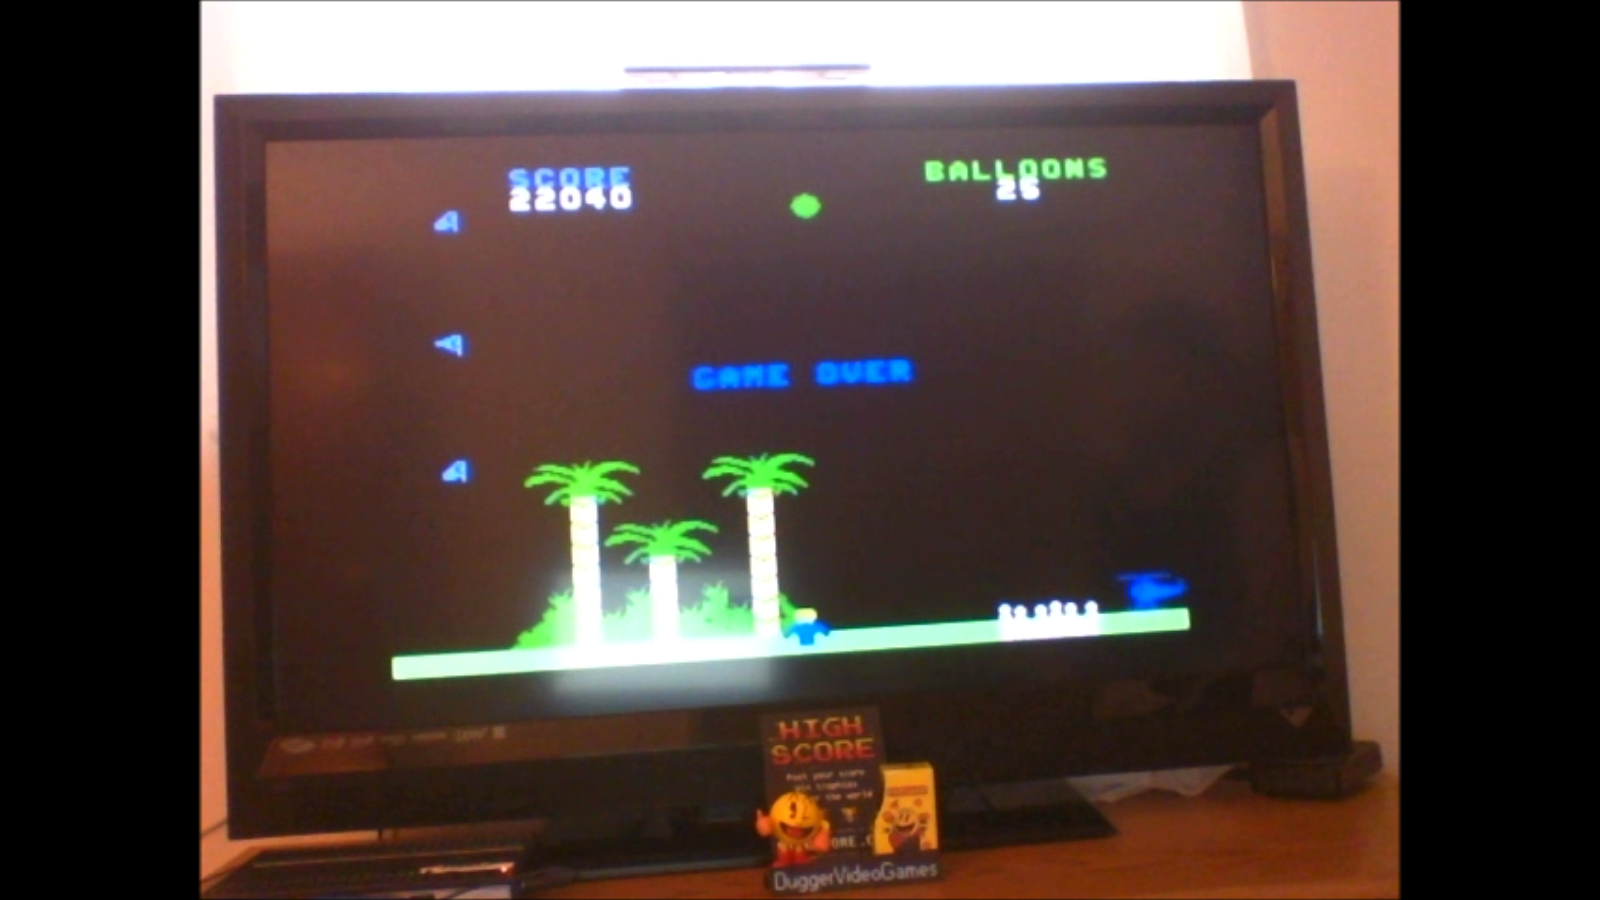 DuggerVideoGames: Gust Buster (Colecovision Flashback) 22,040 points on 2016-12-13 12:31:51